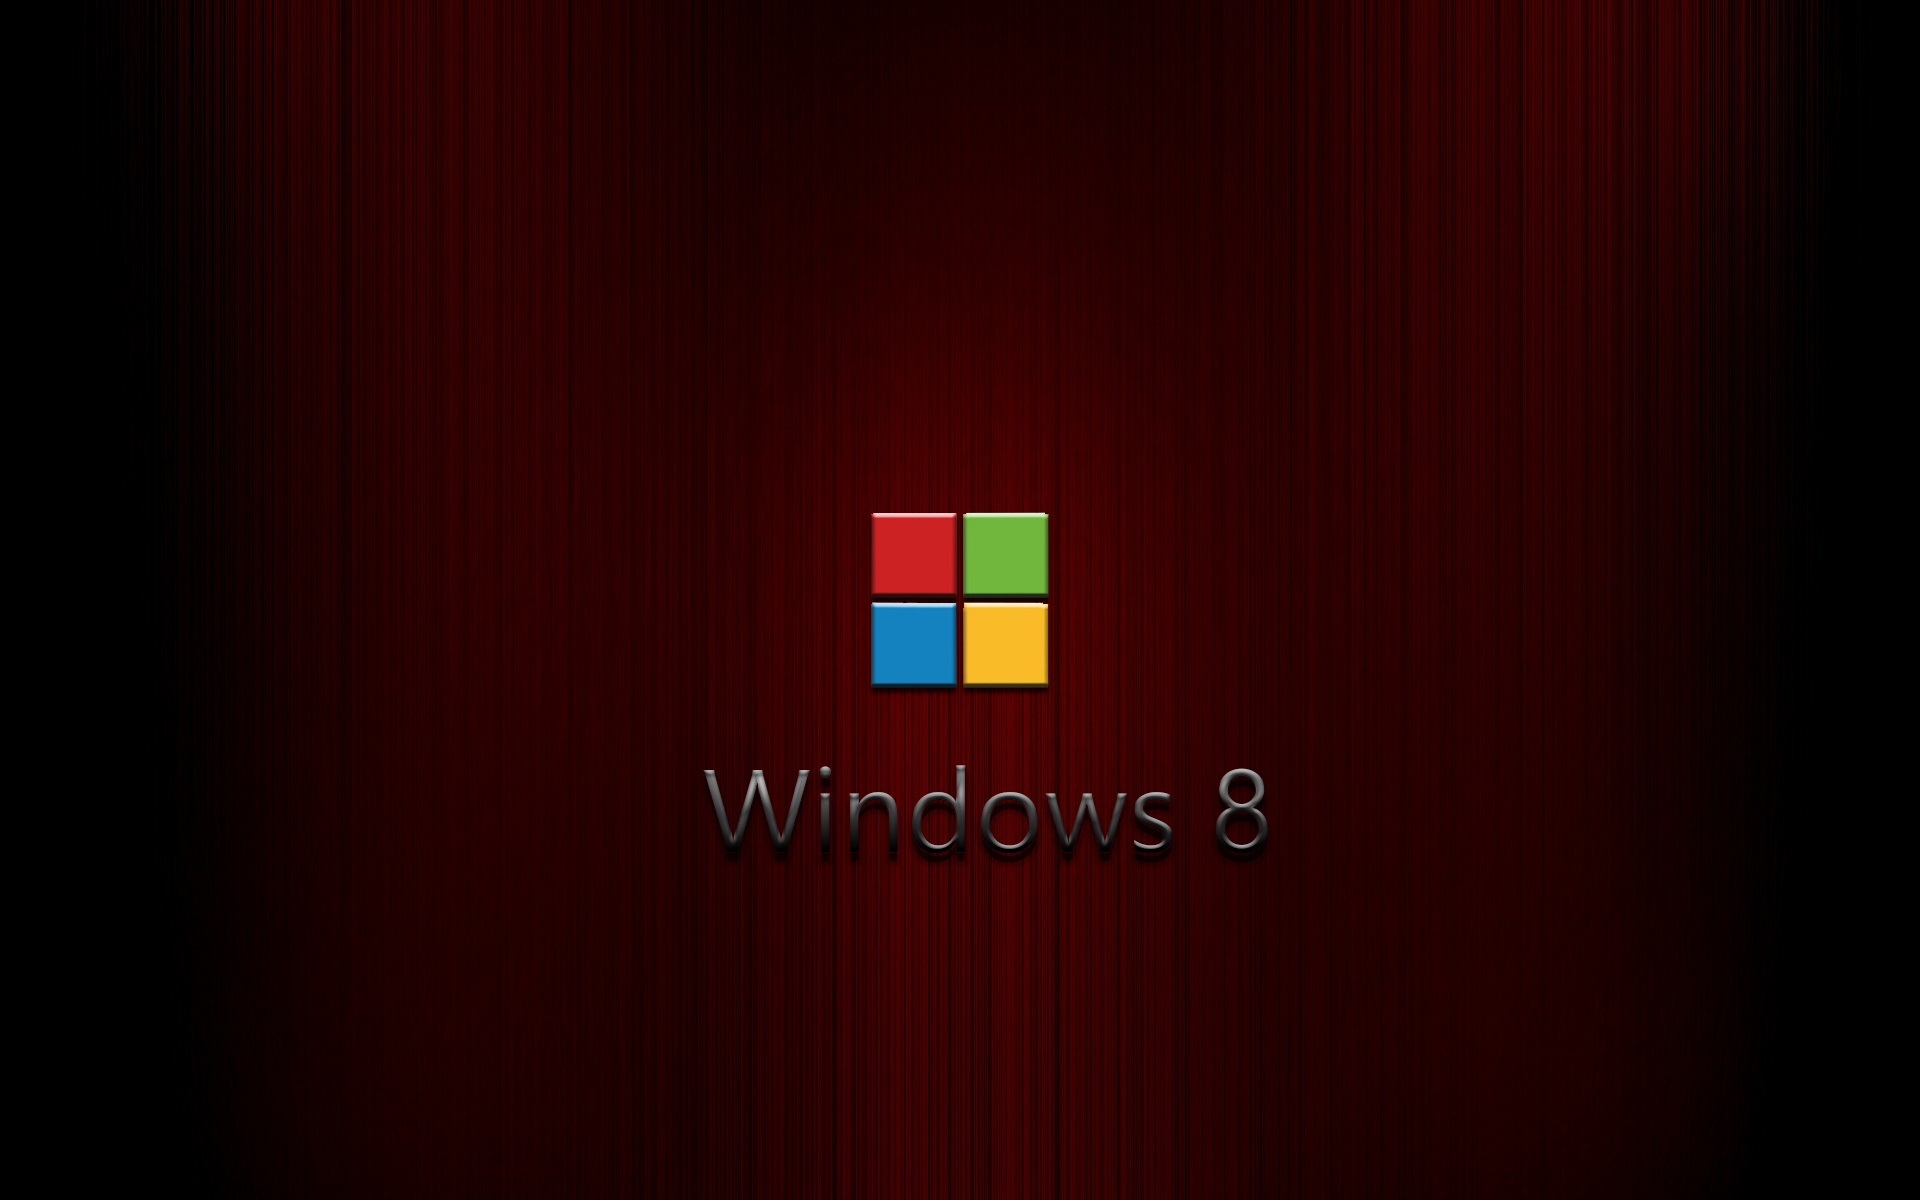 Windows 8 Background Wallpapers   1920x1200   325289 1920x1200